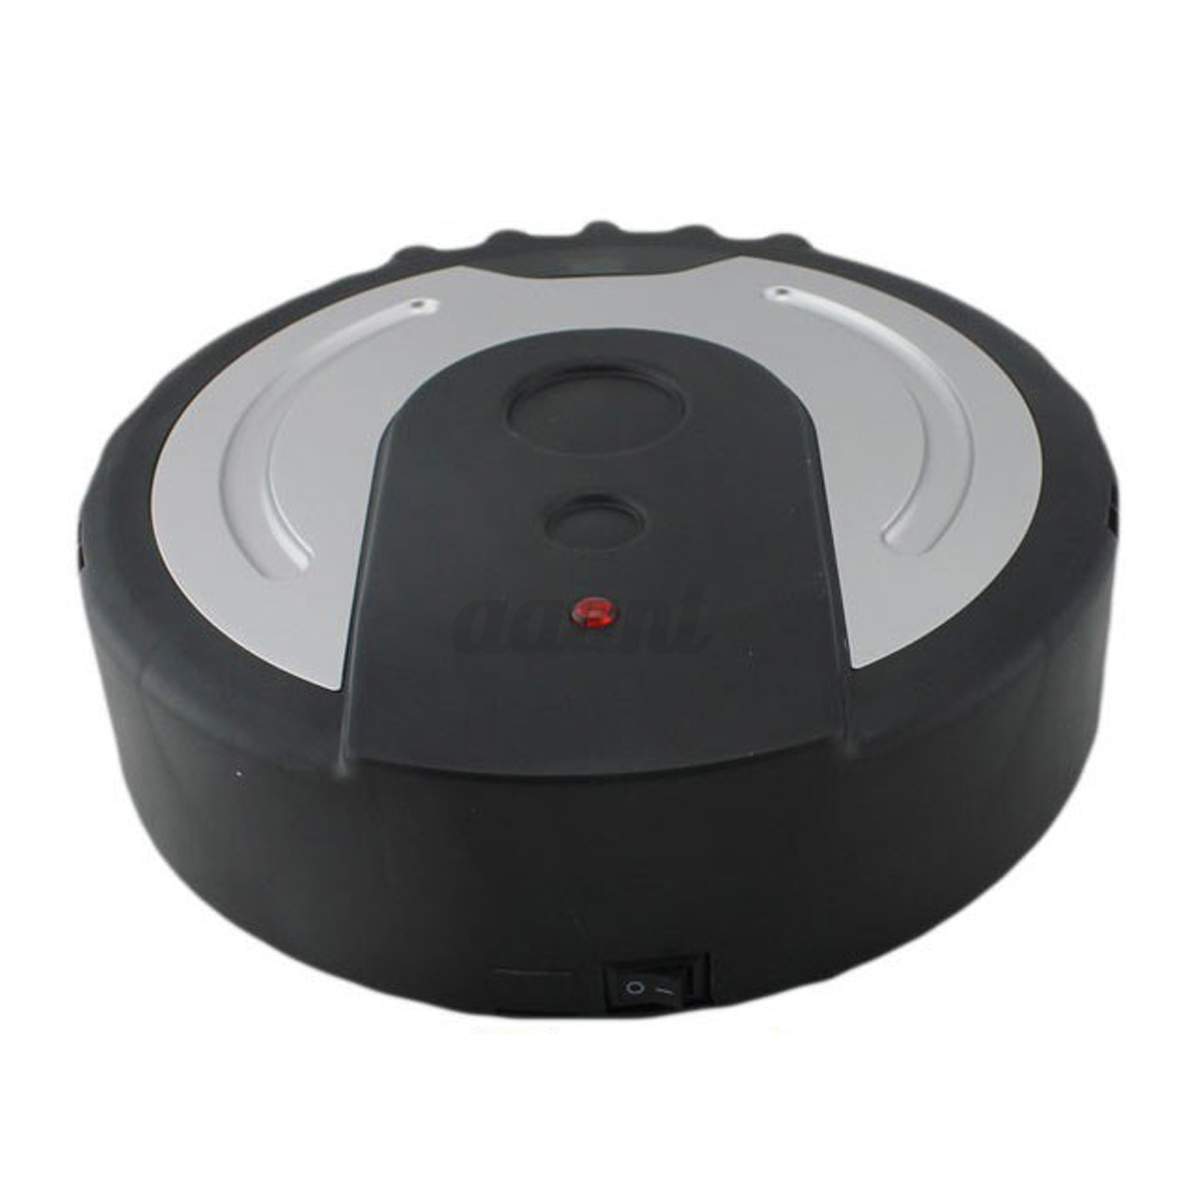 Home Automatic Vacuum Smart Floor Cleaning Robot Auto Dust